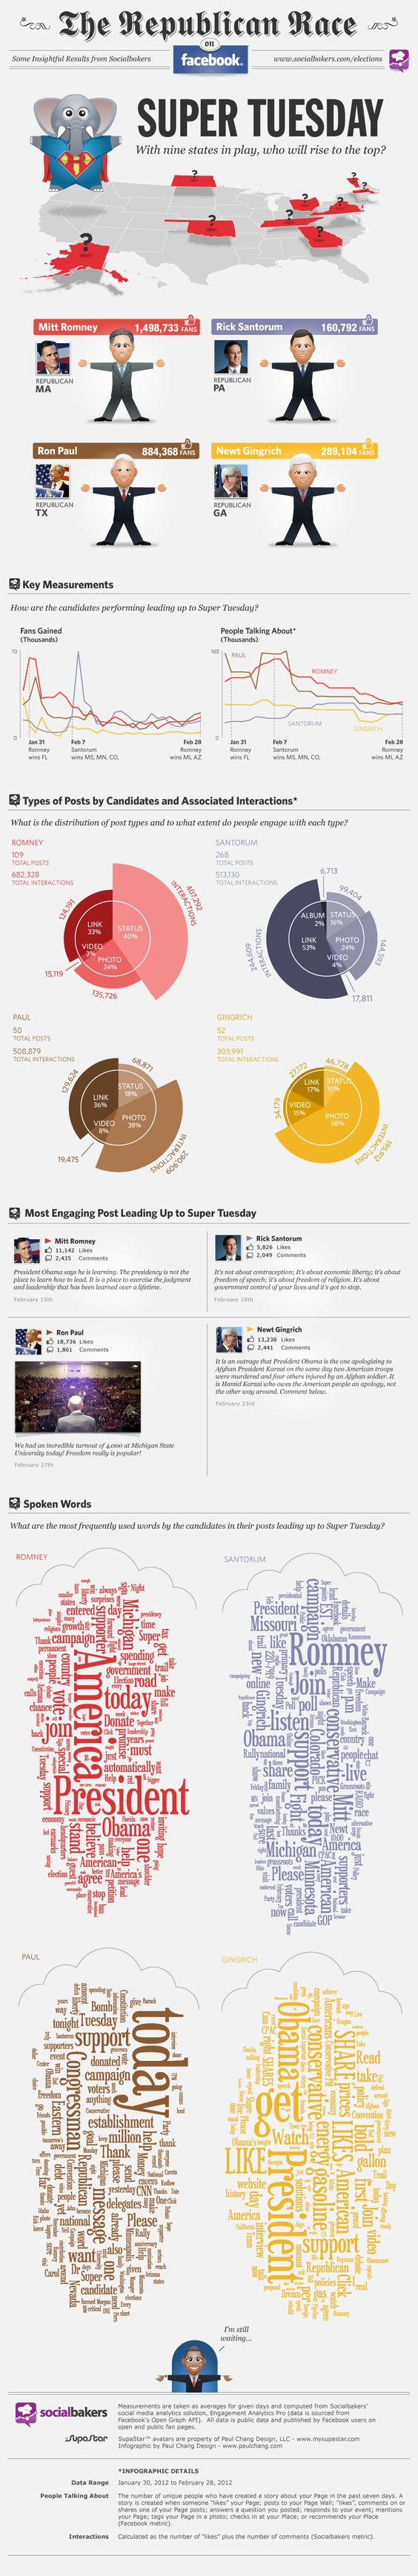 A really cool study done by Socialbakers, visualized in an infographic